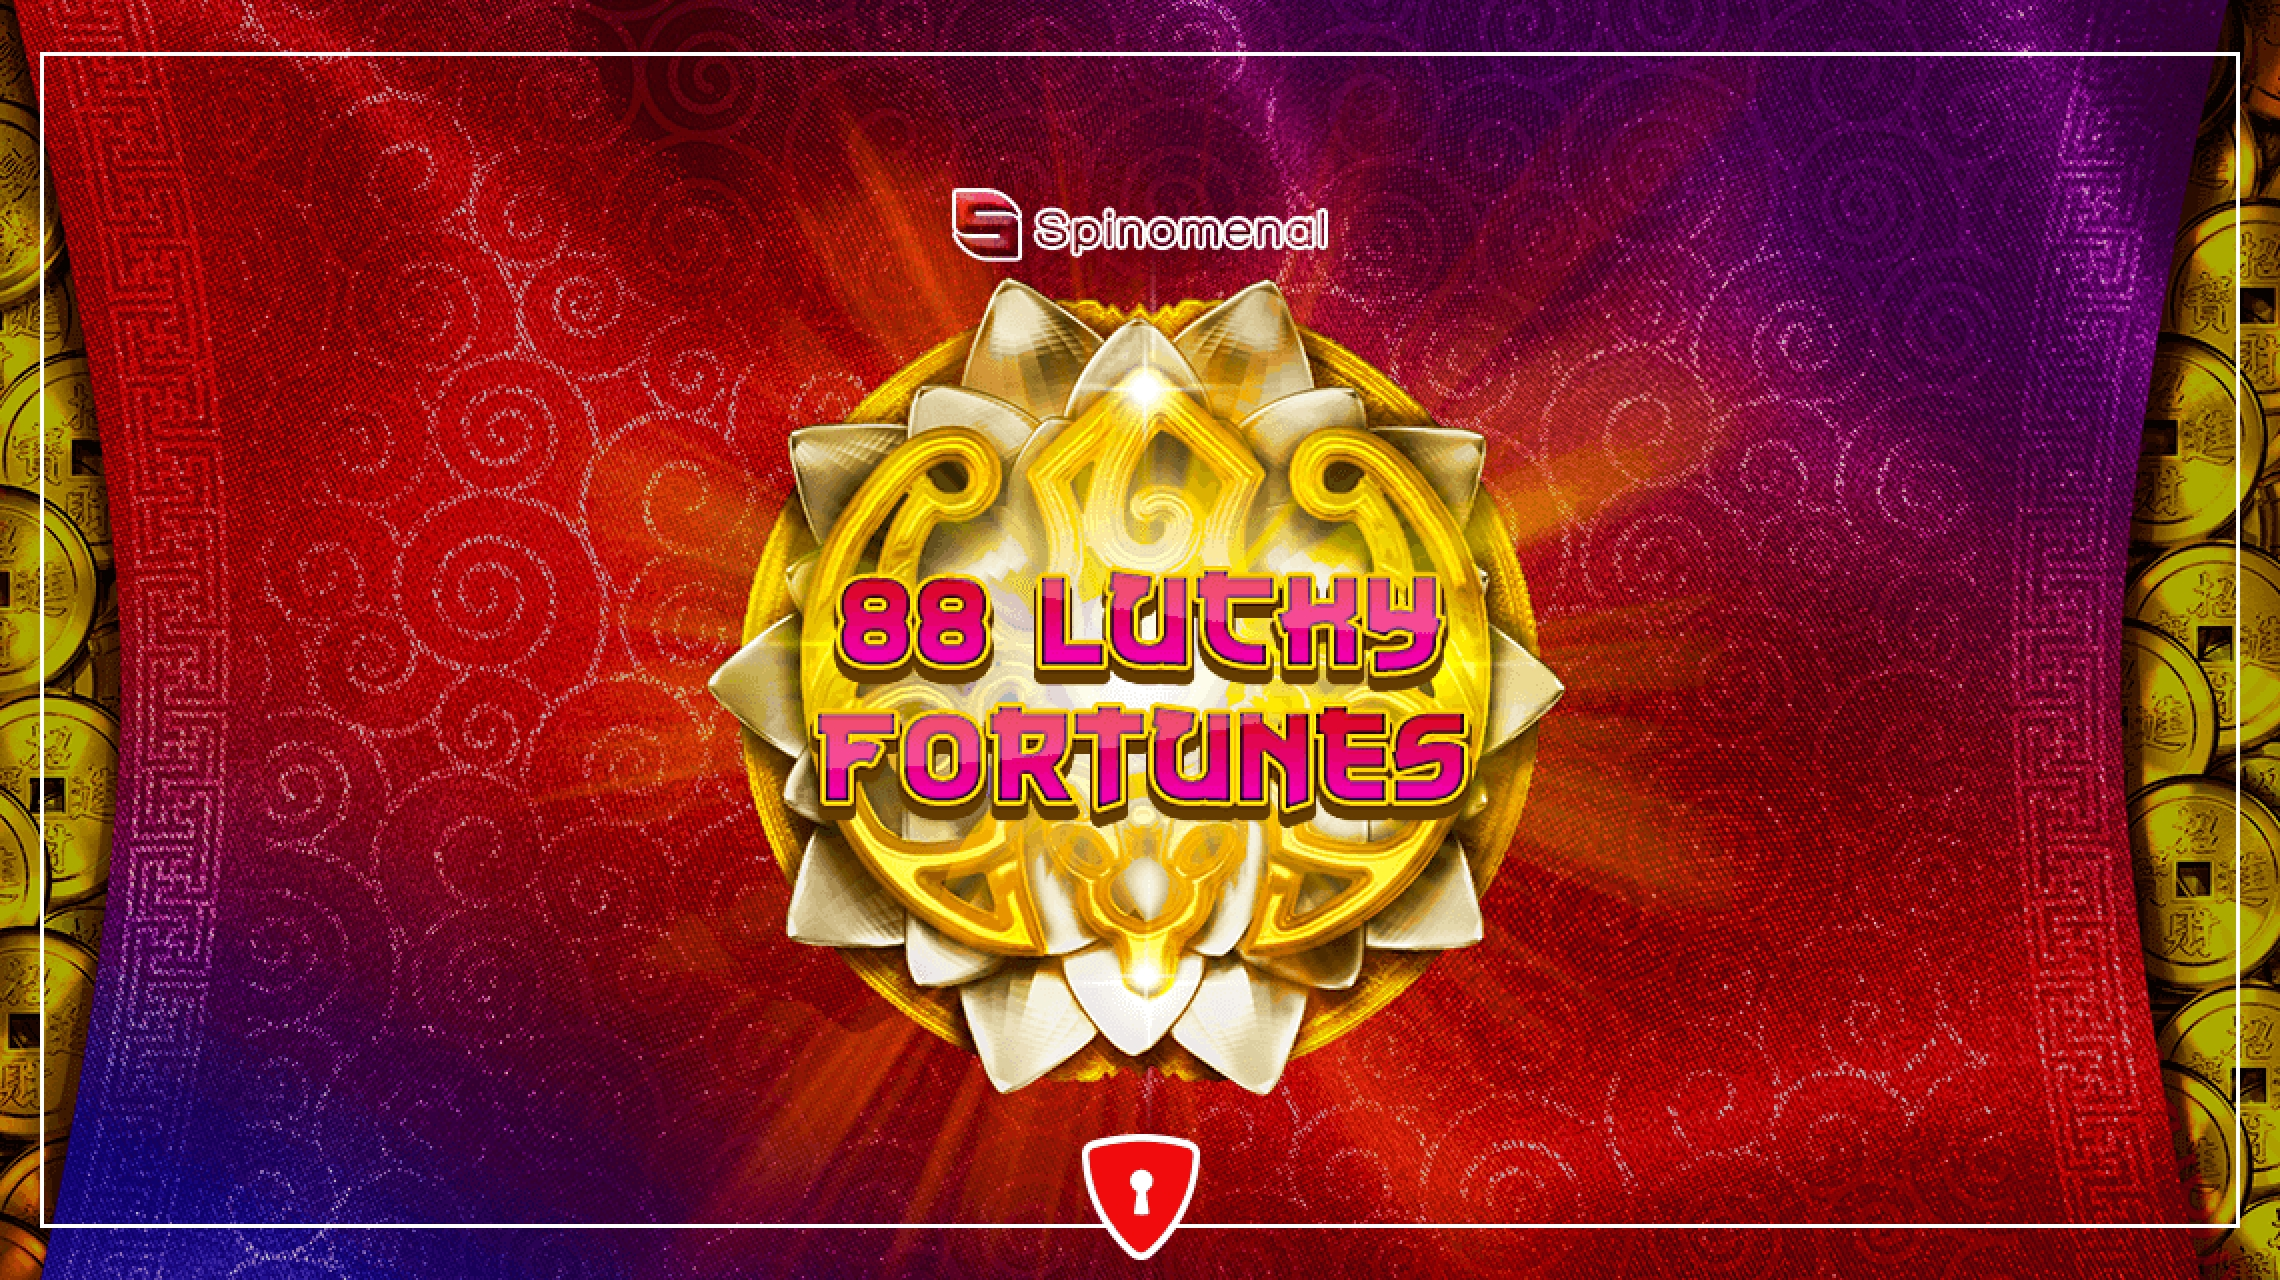 The 88 Lucky Fortunes Online Slot Demo Game by Spinomenal